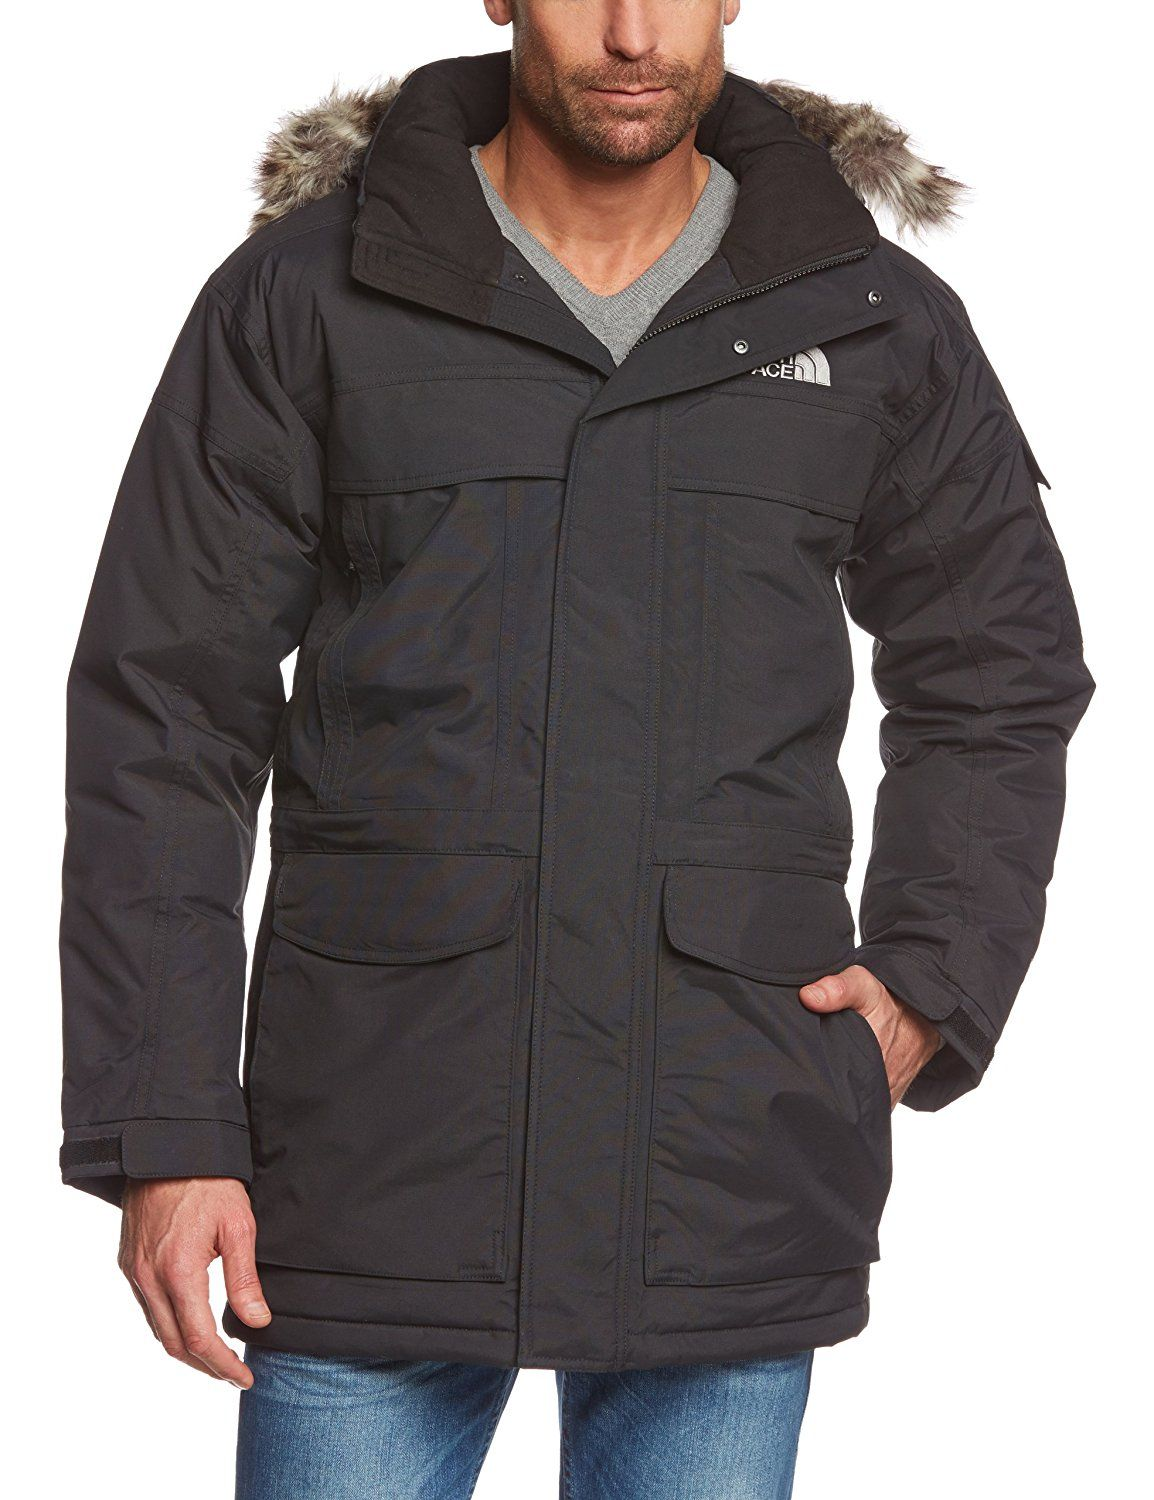 The North Face Clothing North face waterproof, Casual